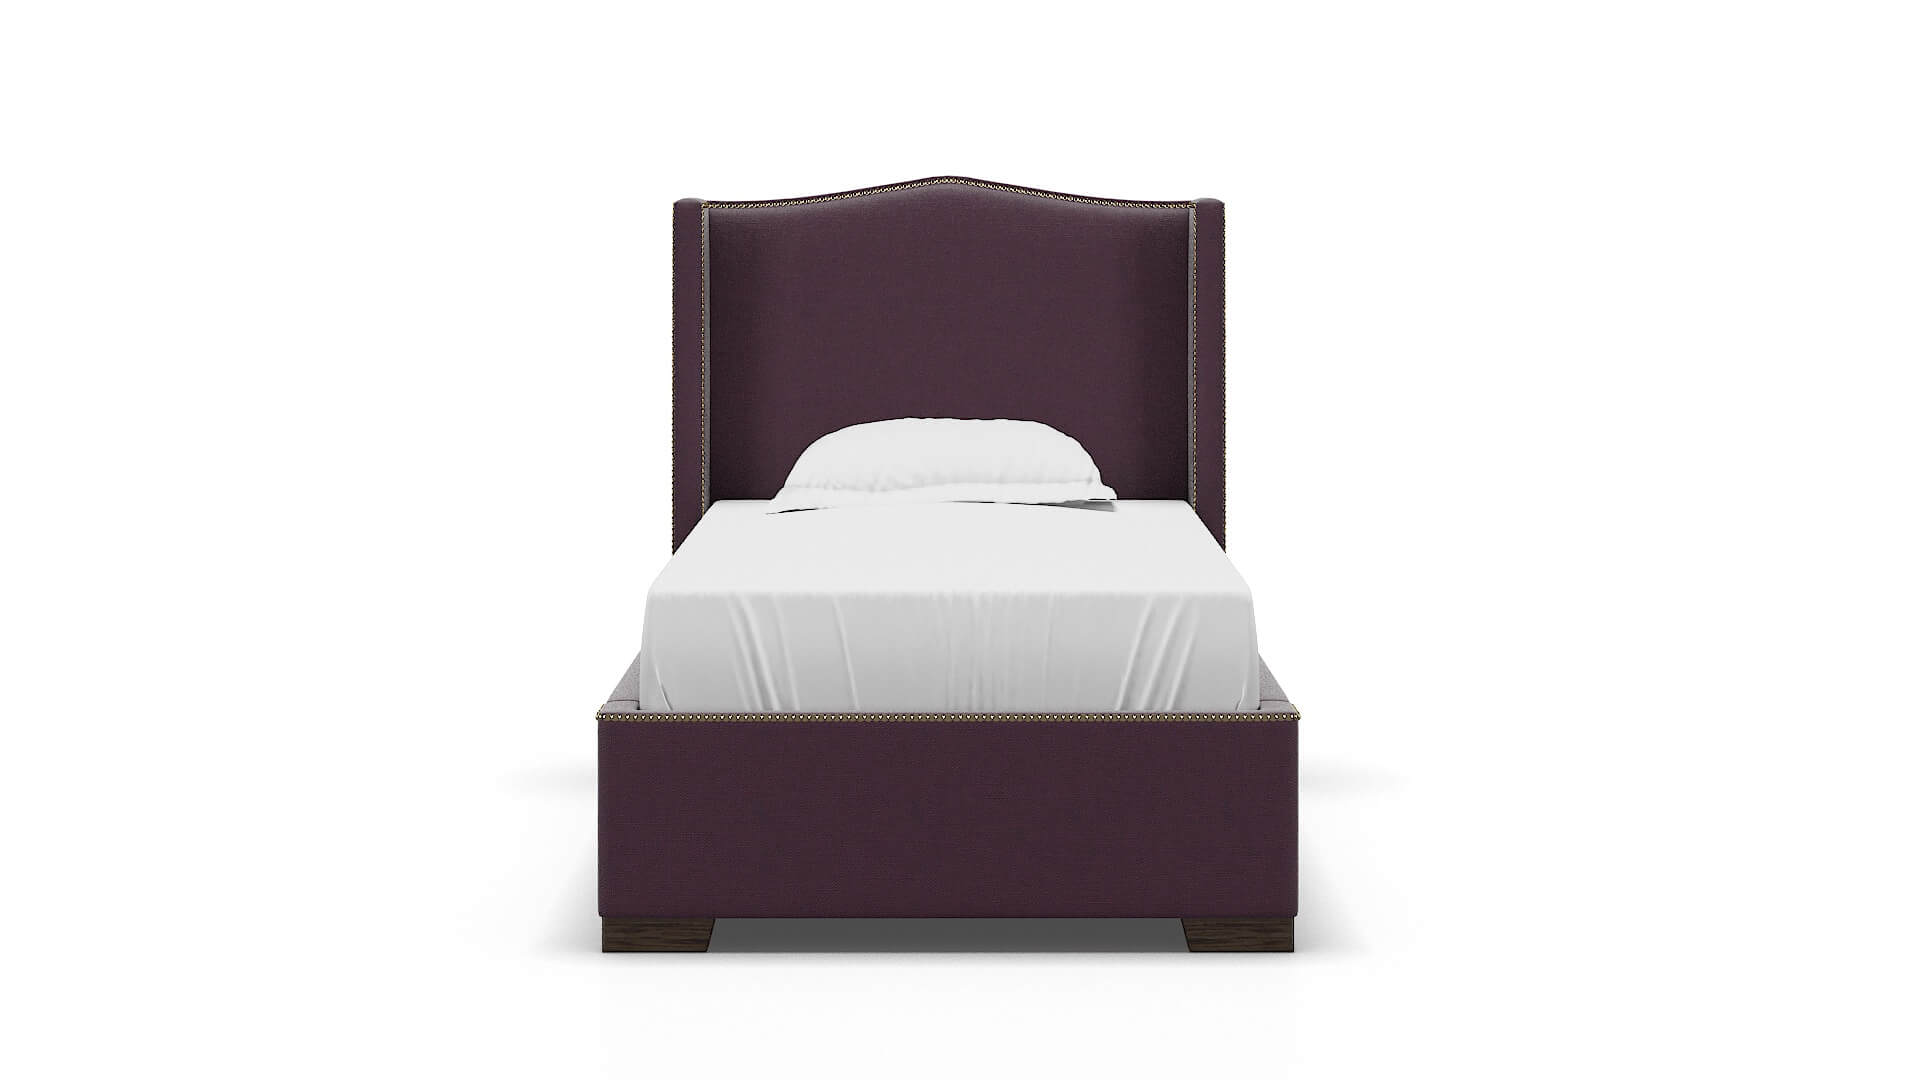 Maya Bella Aubergine chair Twin espresso legs